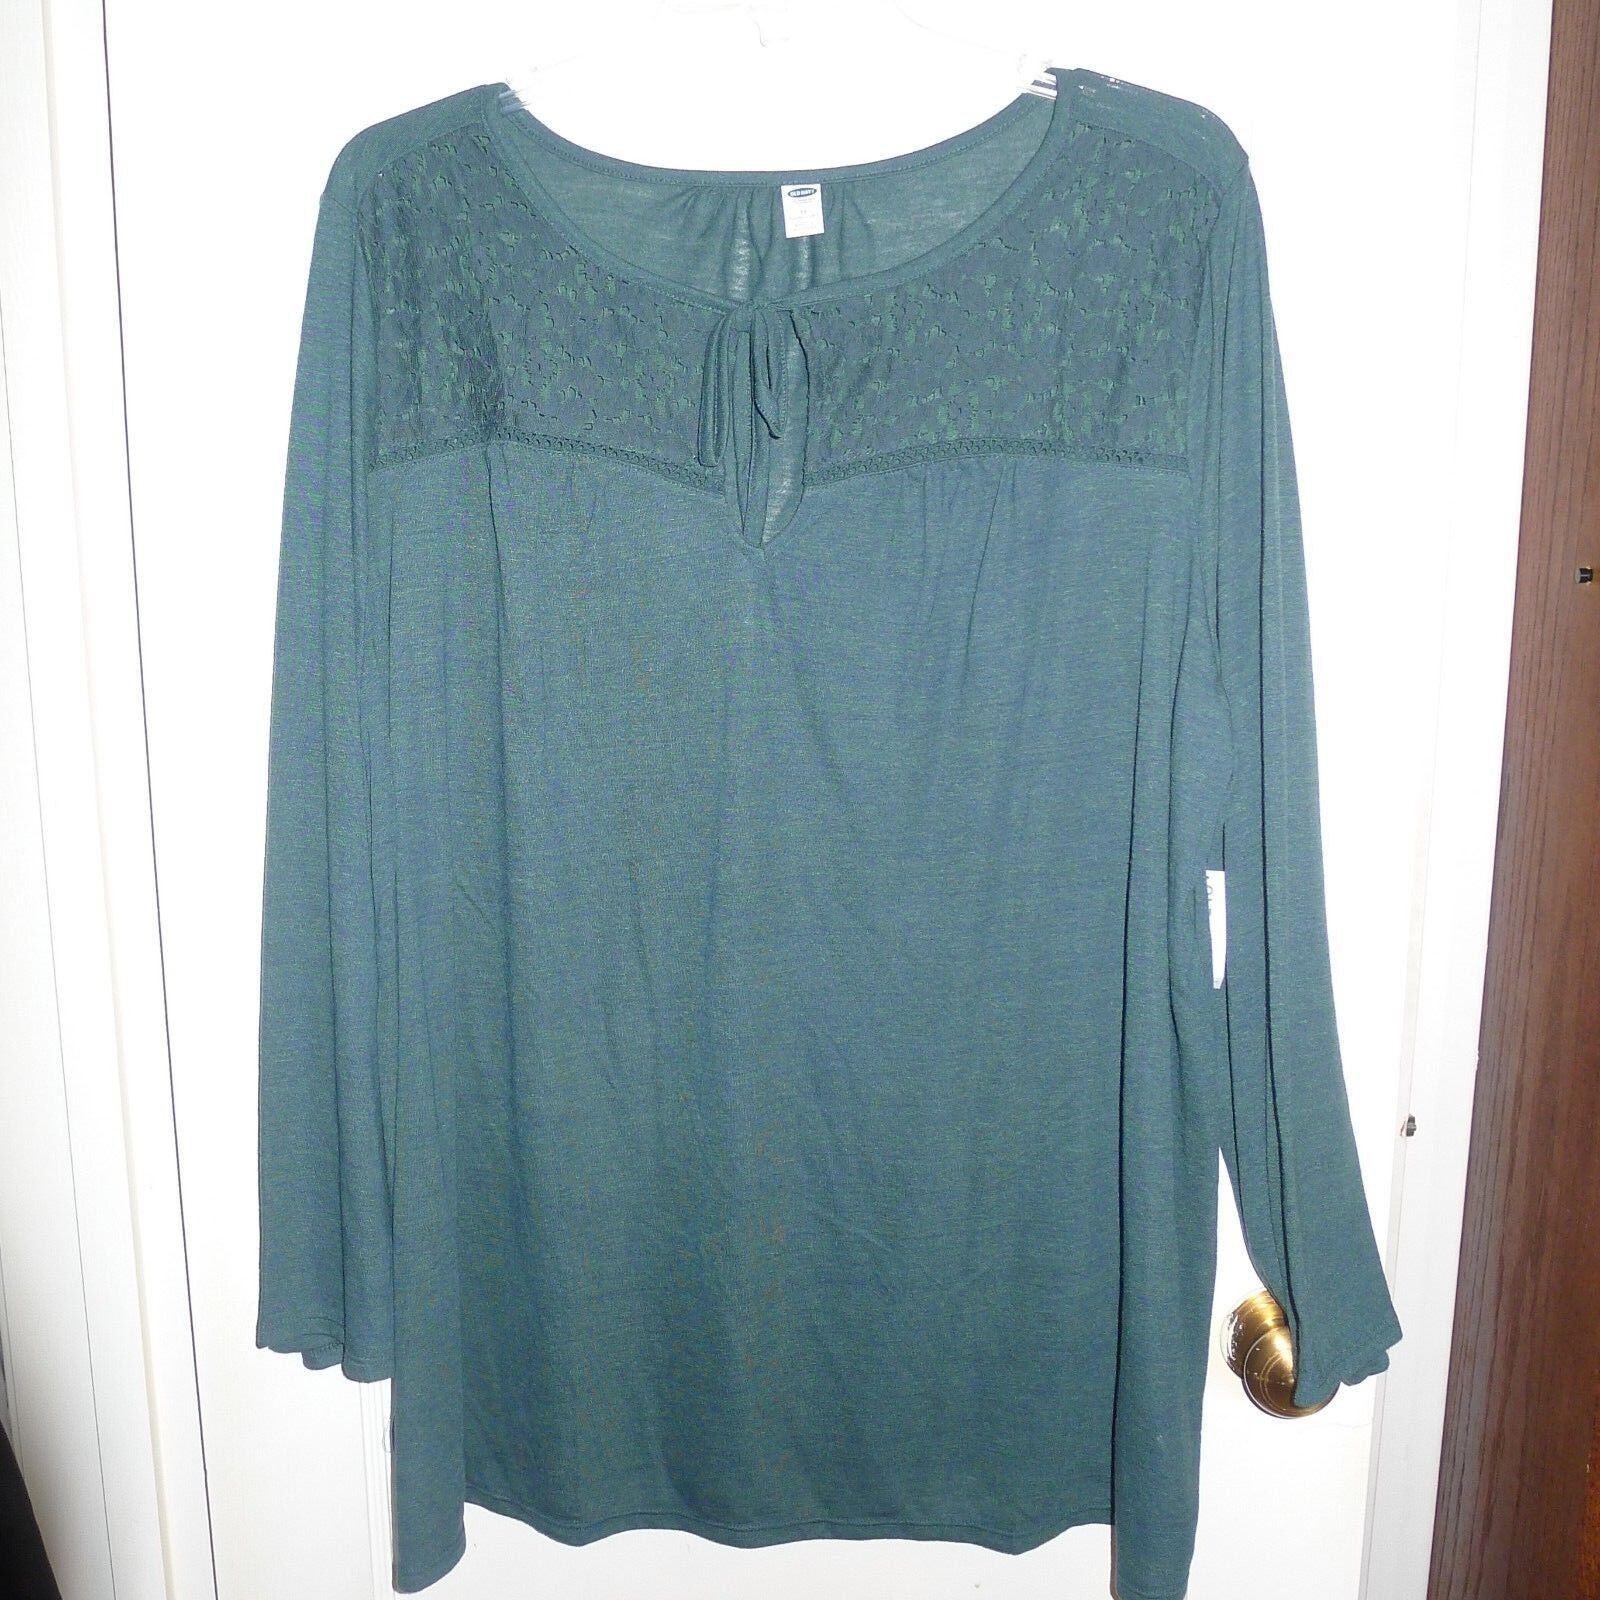 New W/ Tags - Old Navy Plus Size Lace Yoke Tie Neck Top 3X Dark Green - $20.99